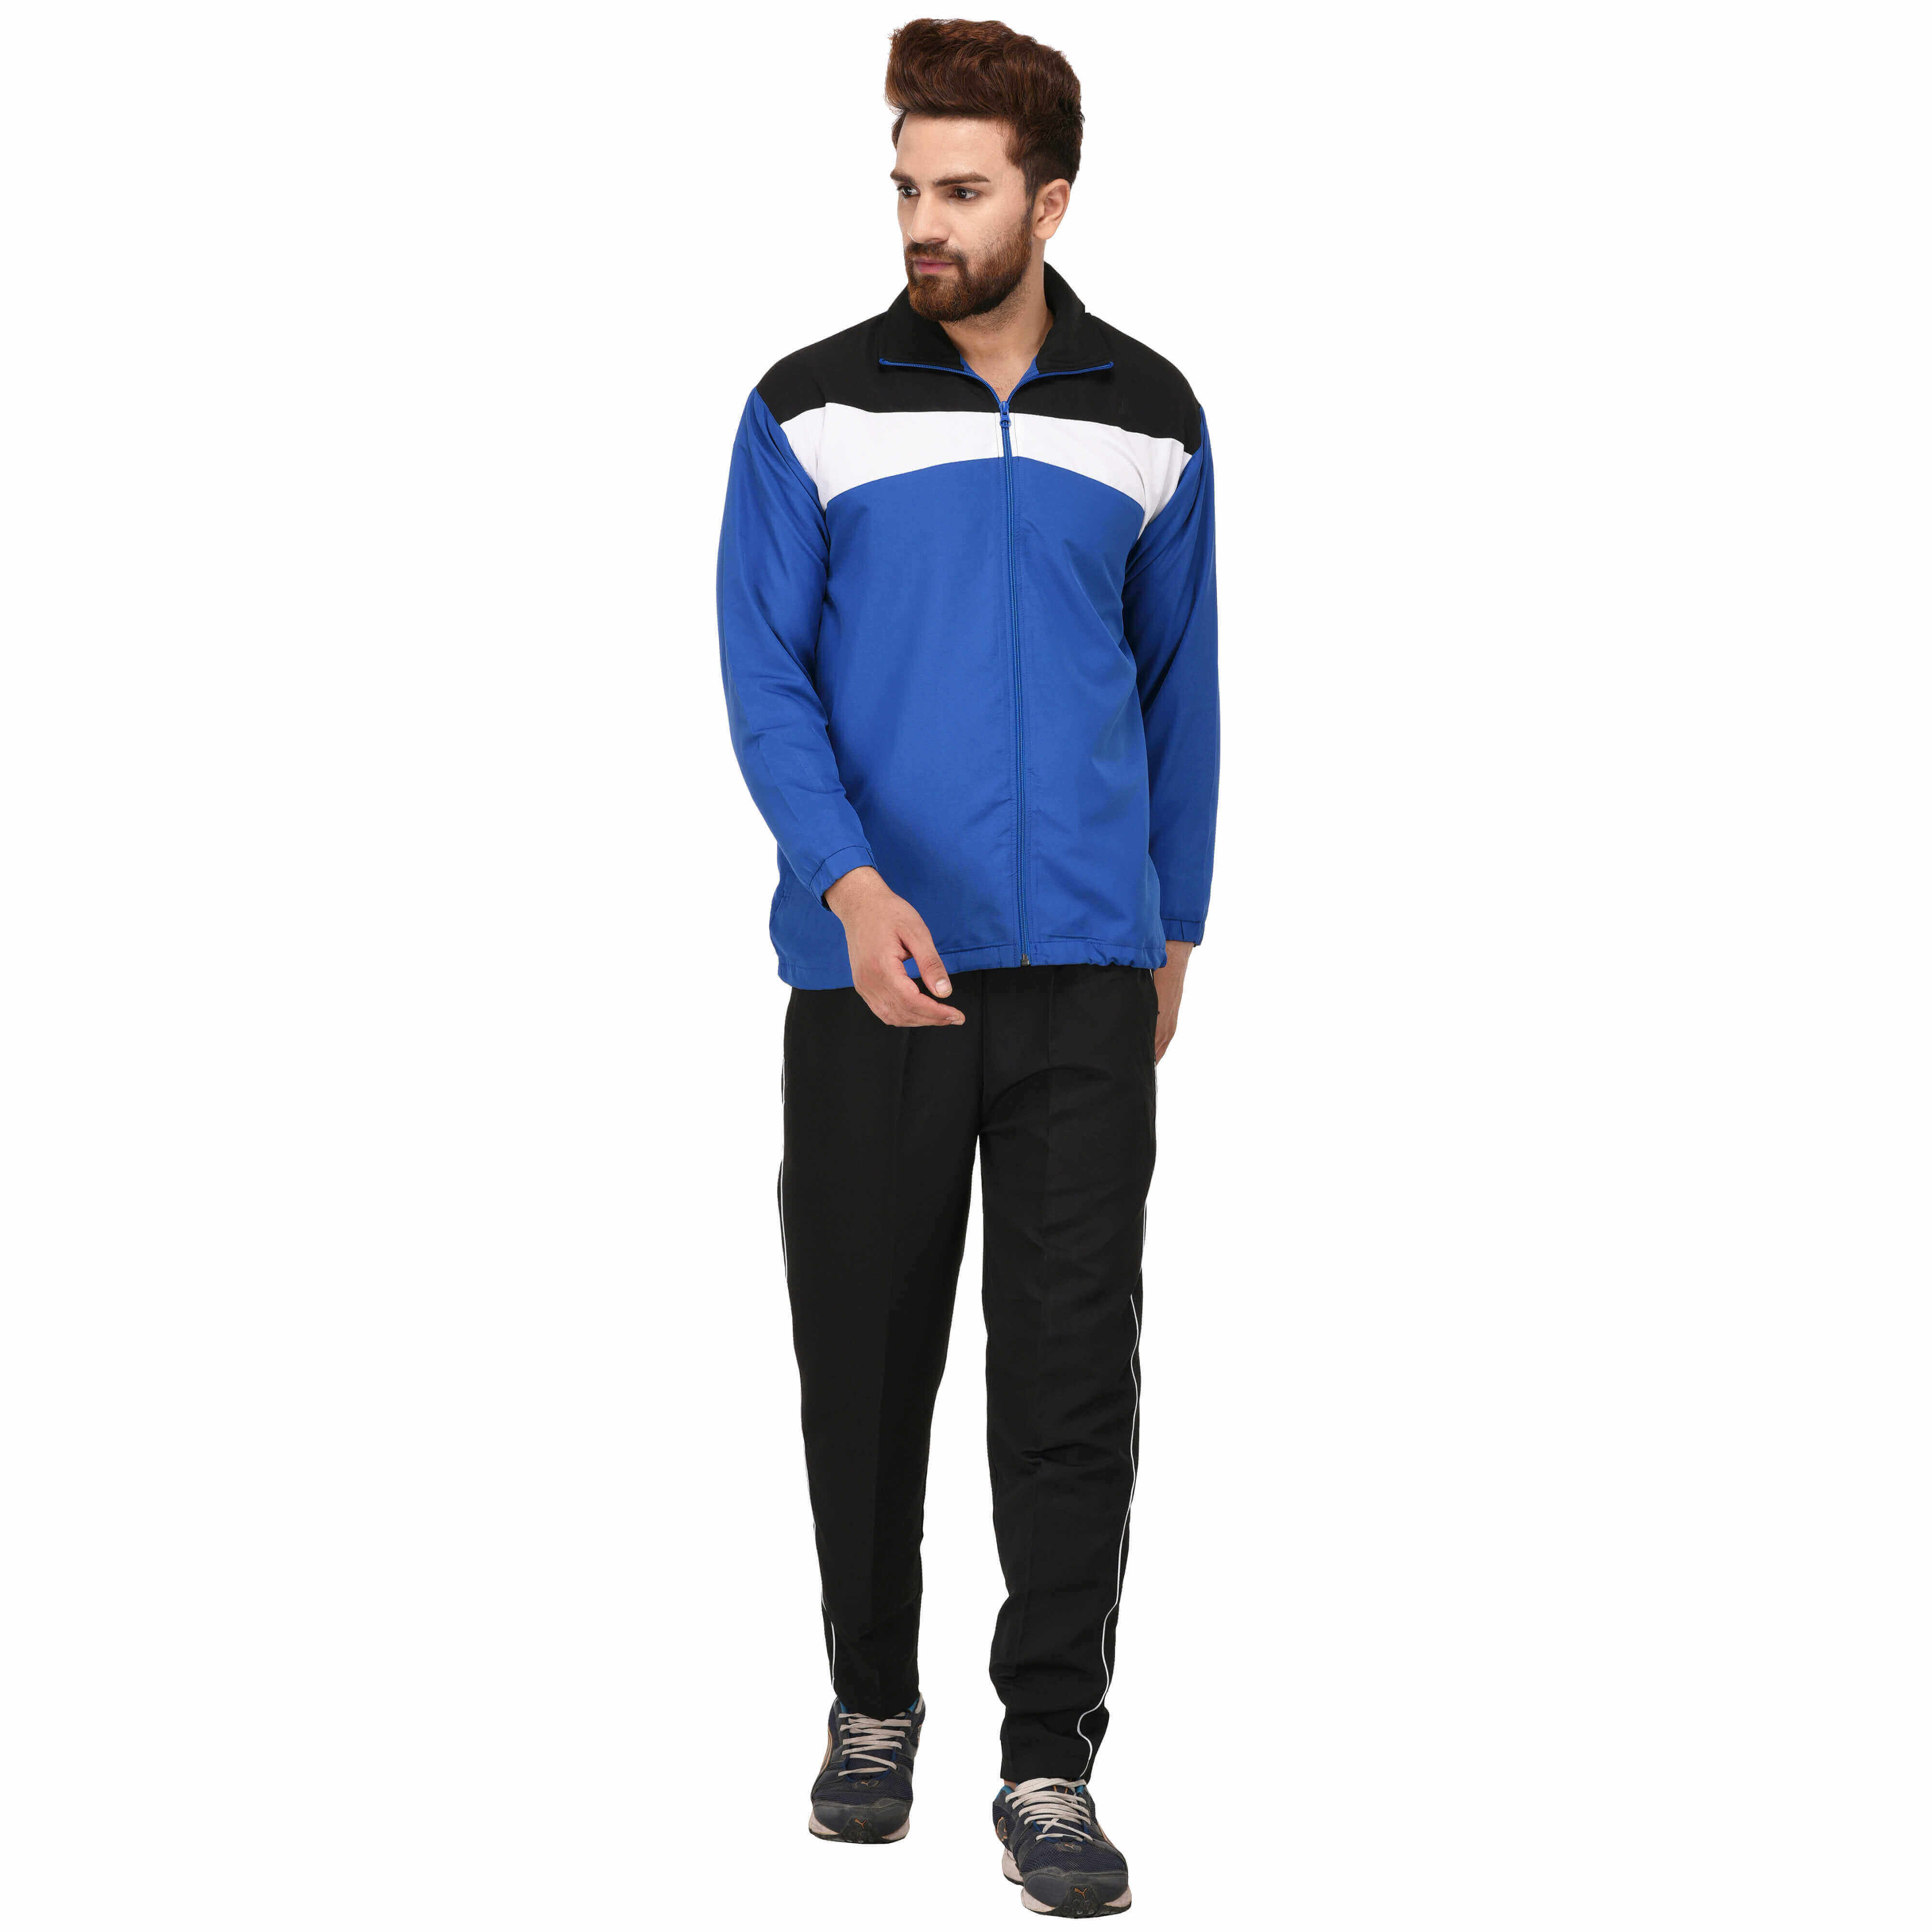 Mens Tracksuits Manufacturers in United-states-of-america